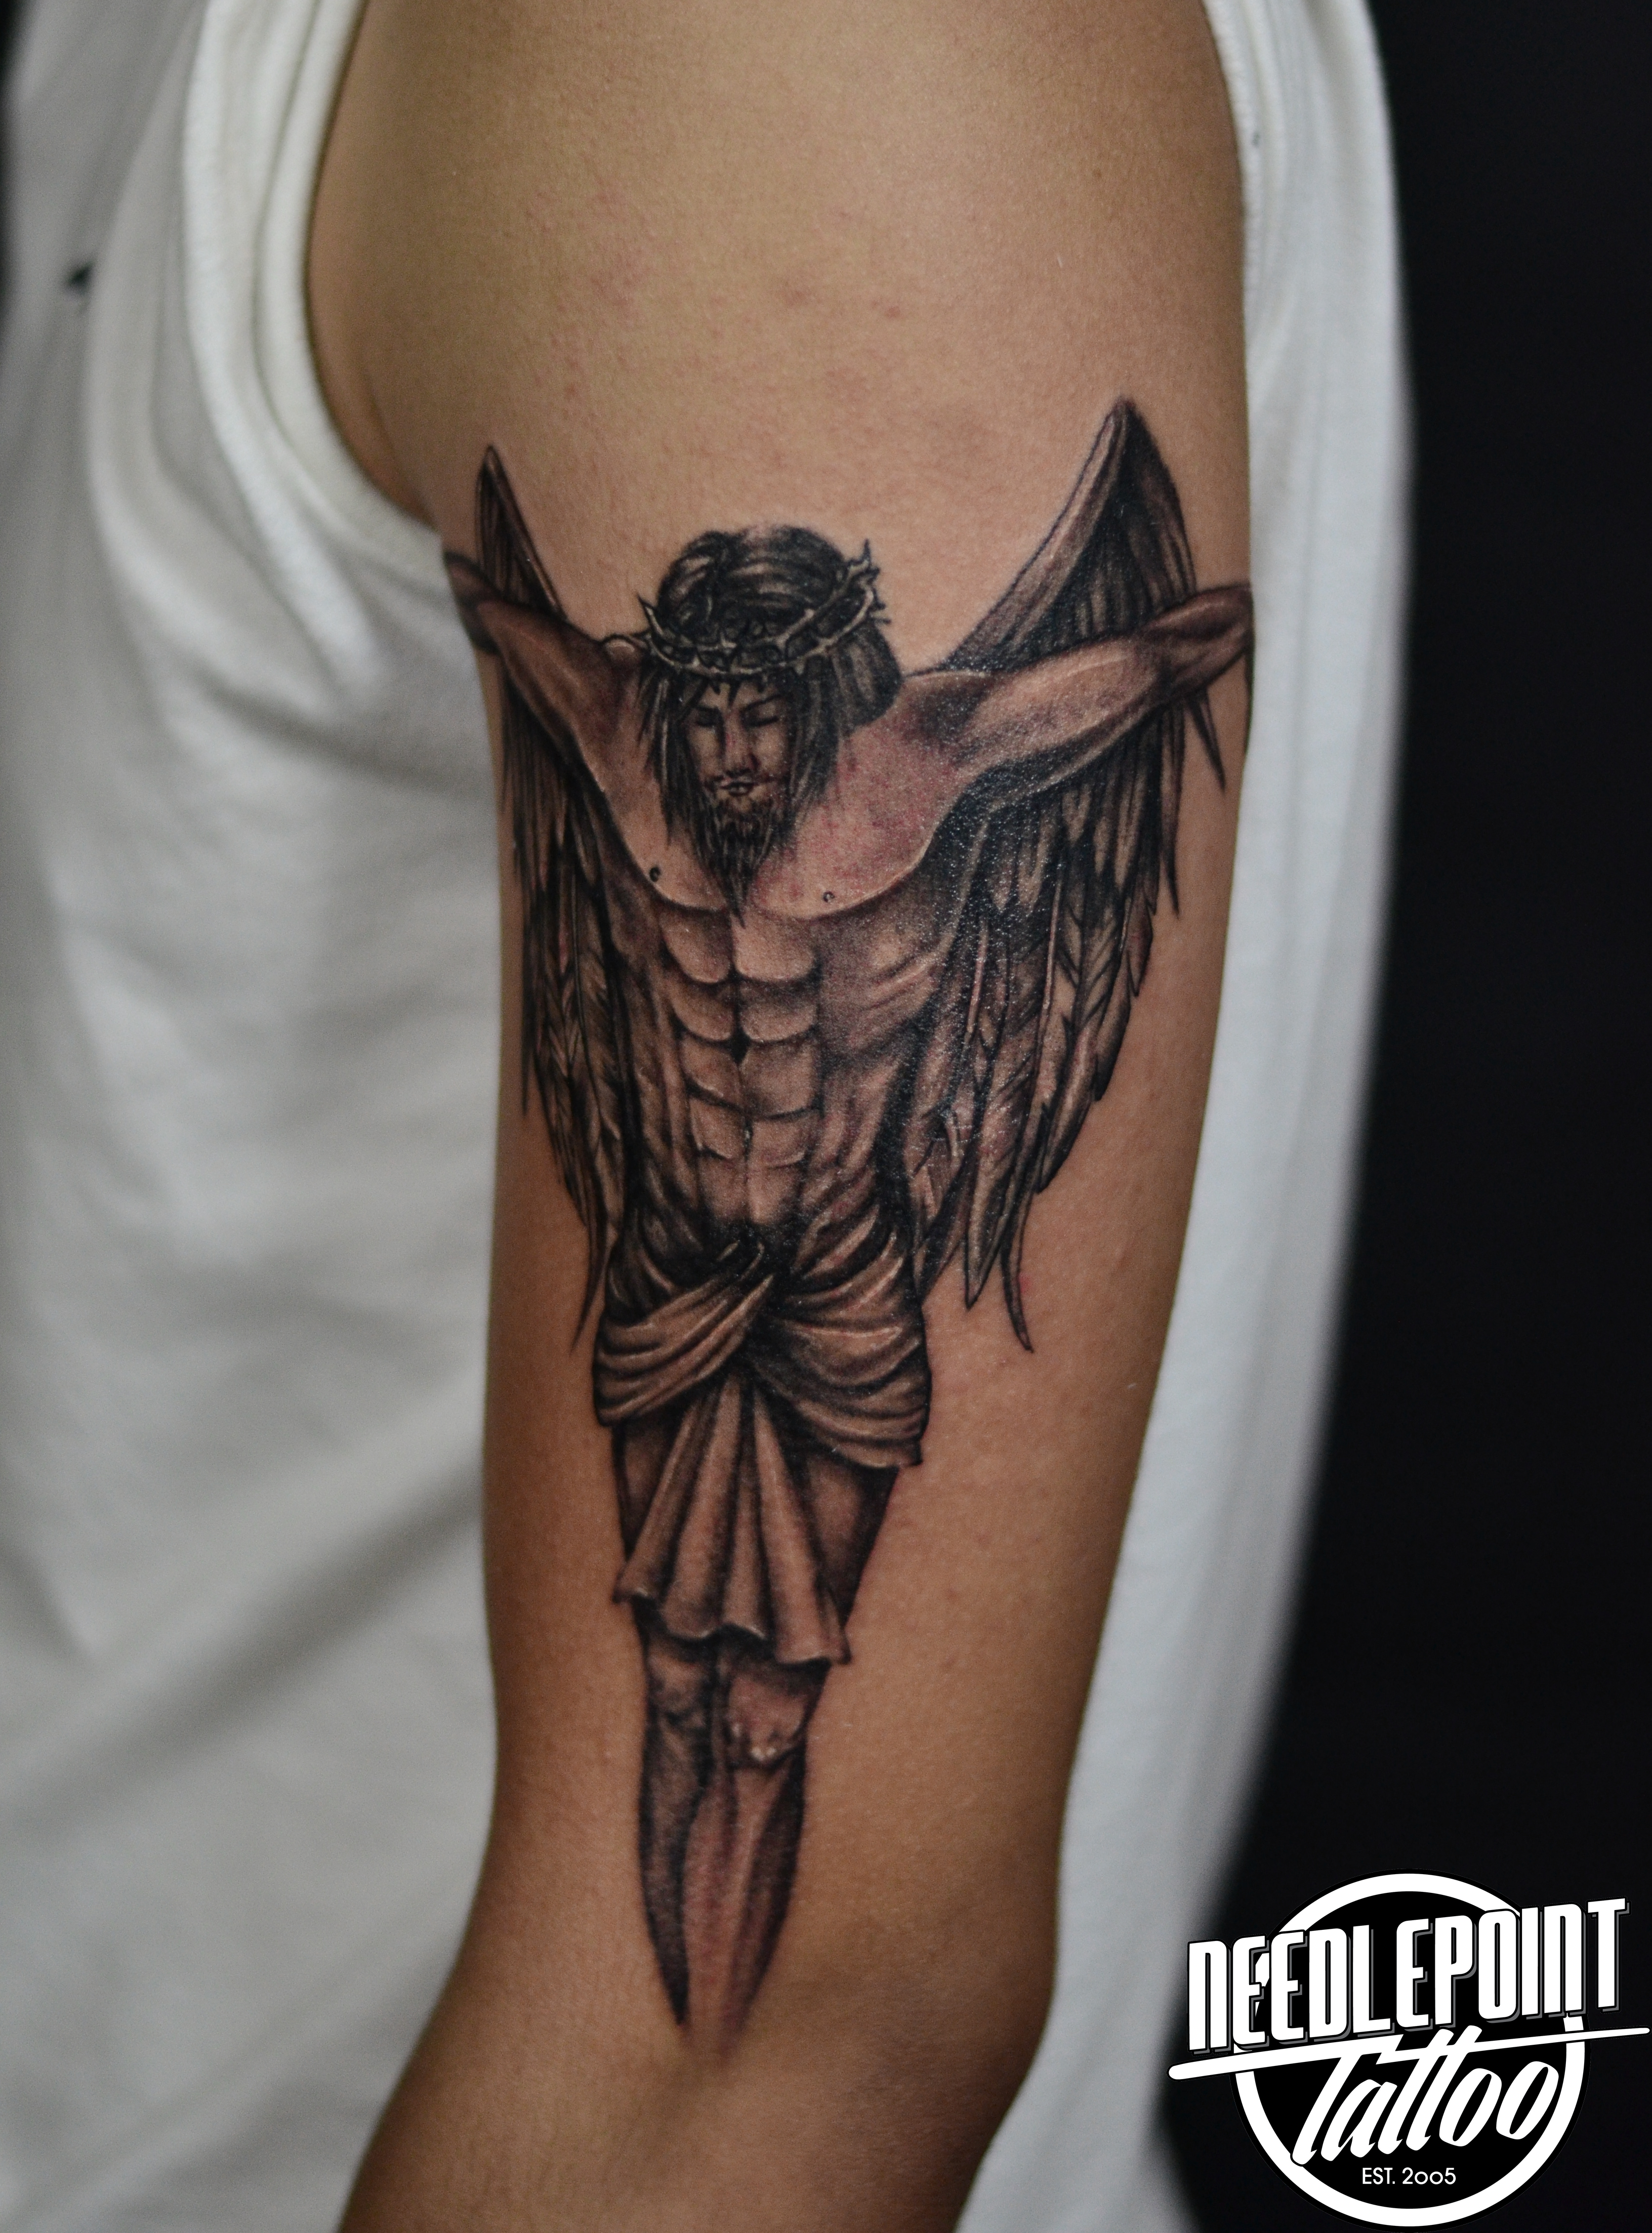 Black and gray Crucifix Tattoo